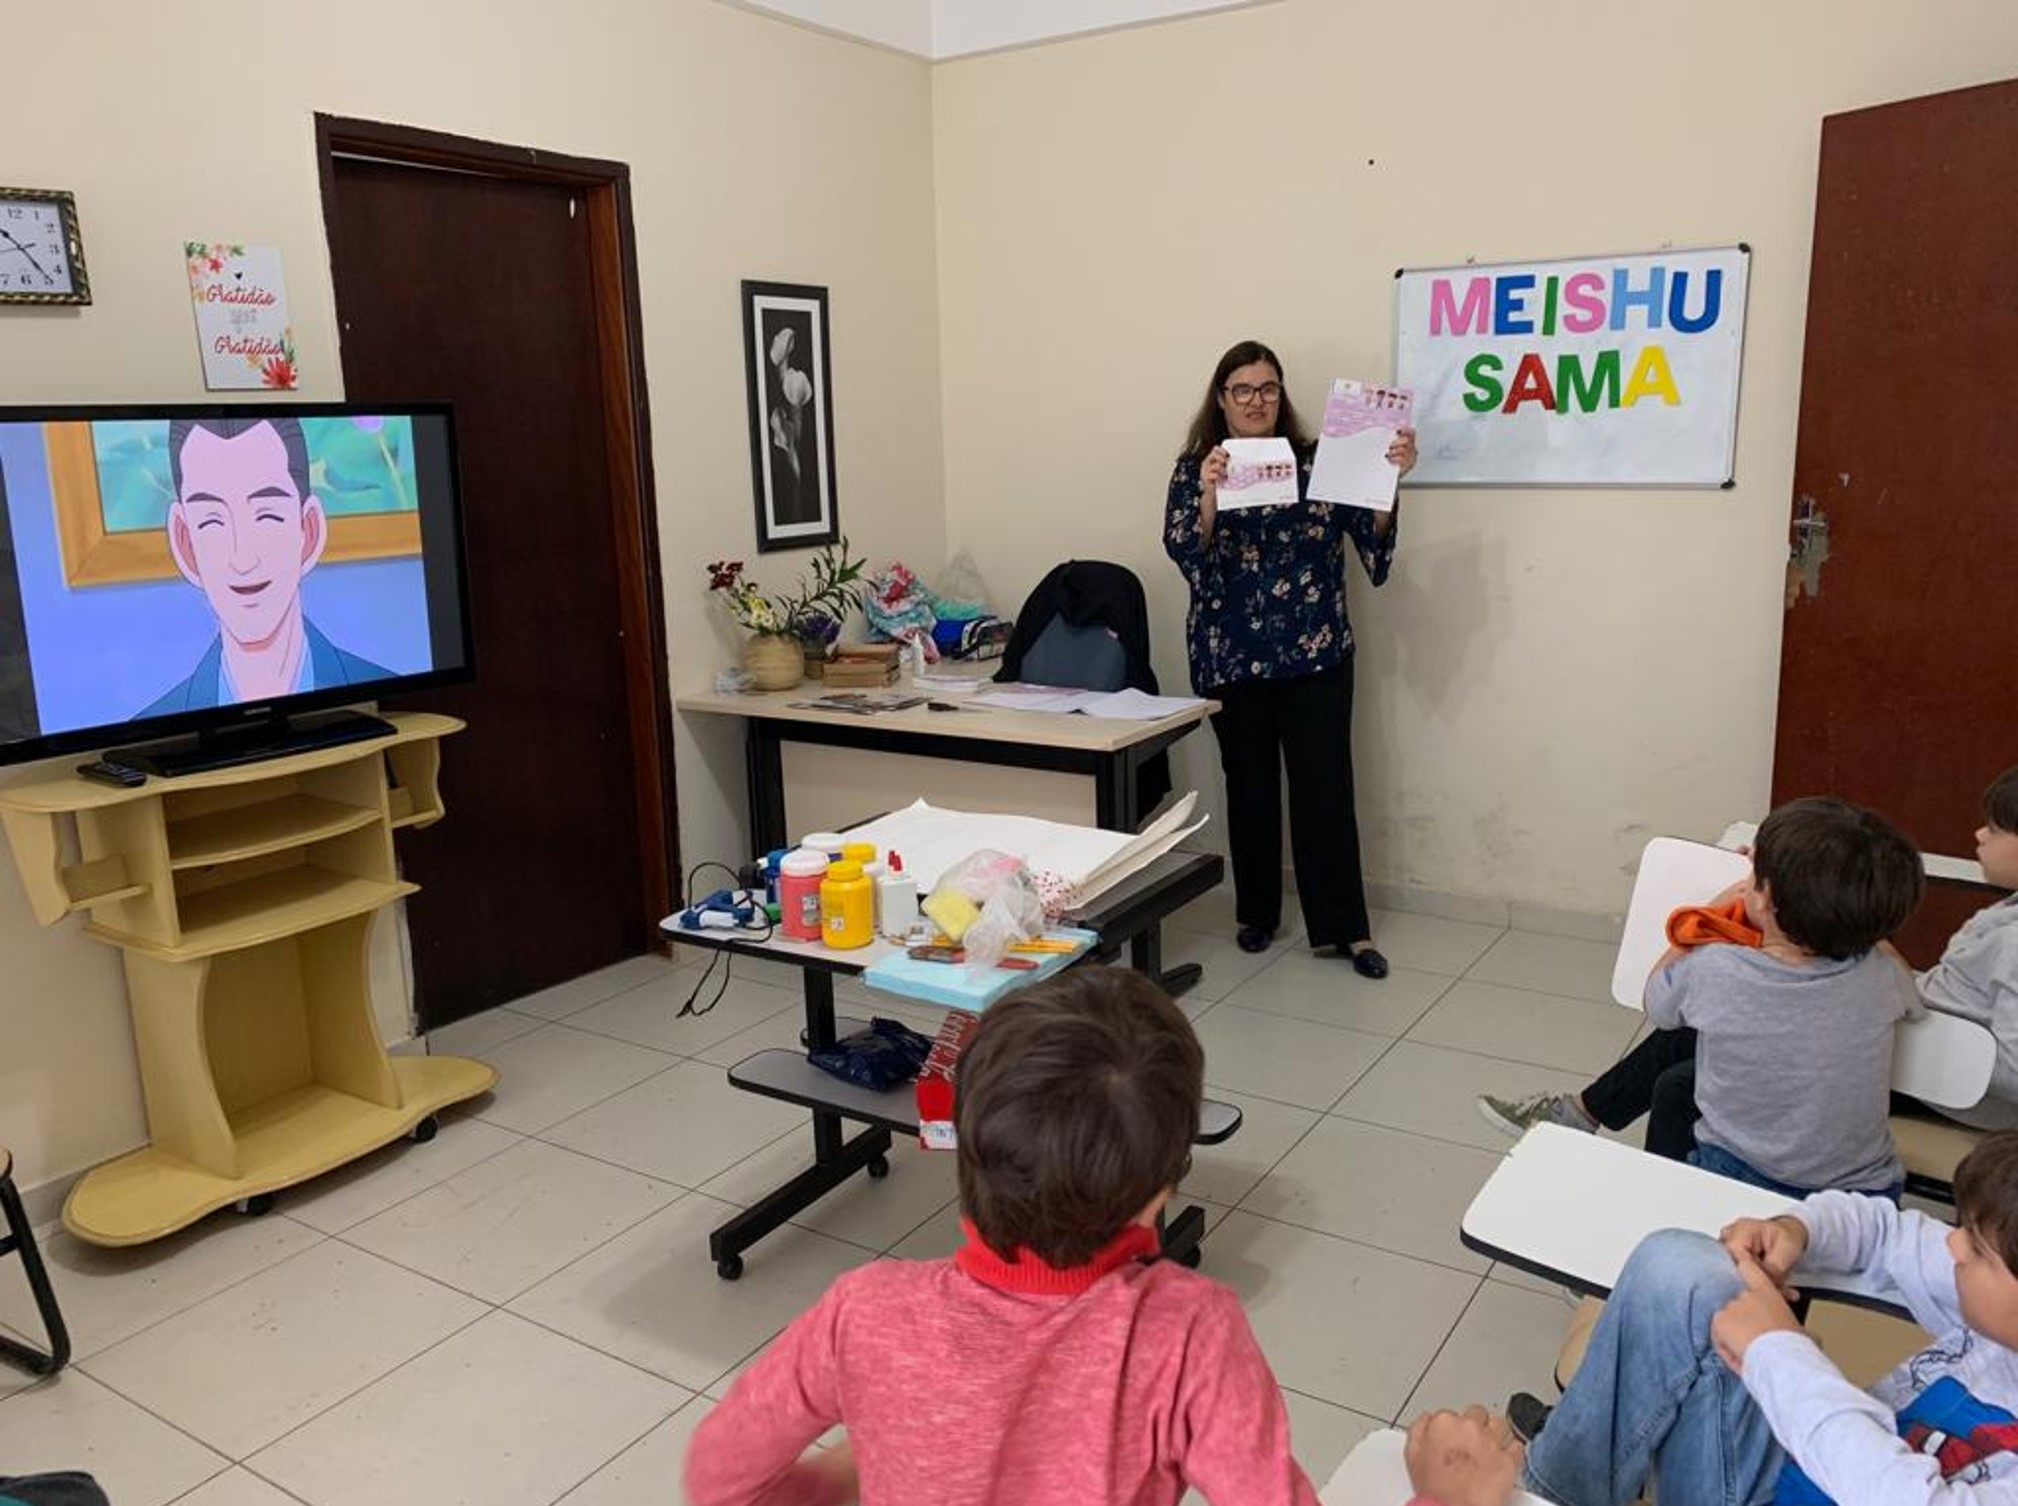 Movimento Kids do Johrei Center Guaianases (SP) se prepara para o Culto do Paraíso Terrestre